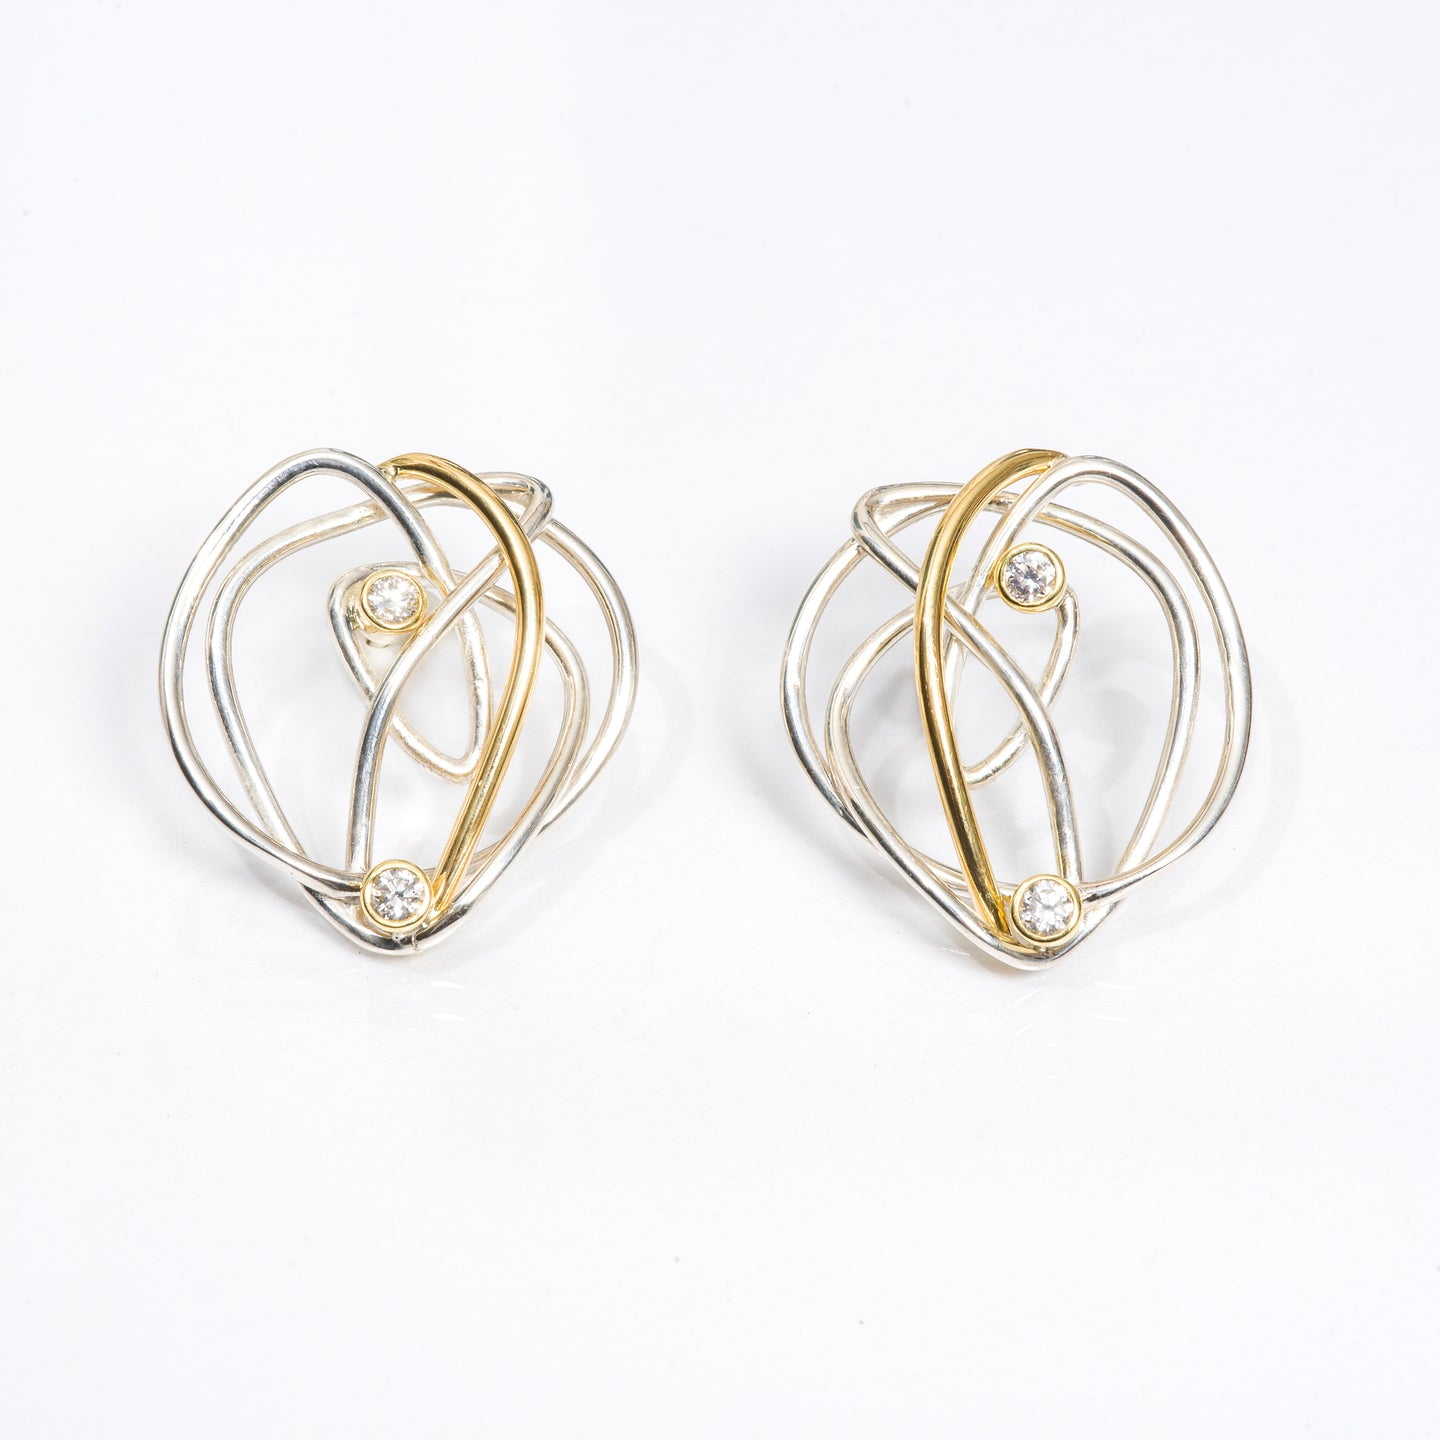 Silver and Gold Diamond Earring | Nikki Sedacca Art Jewlery